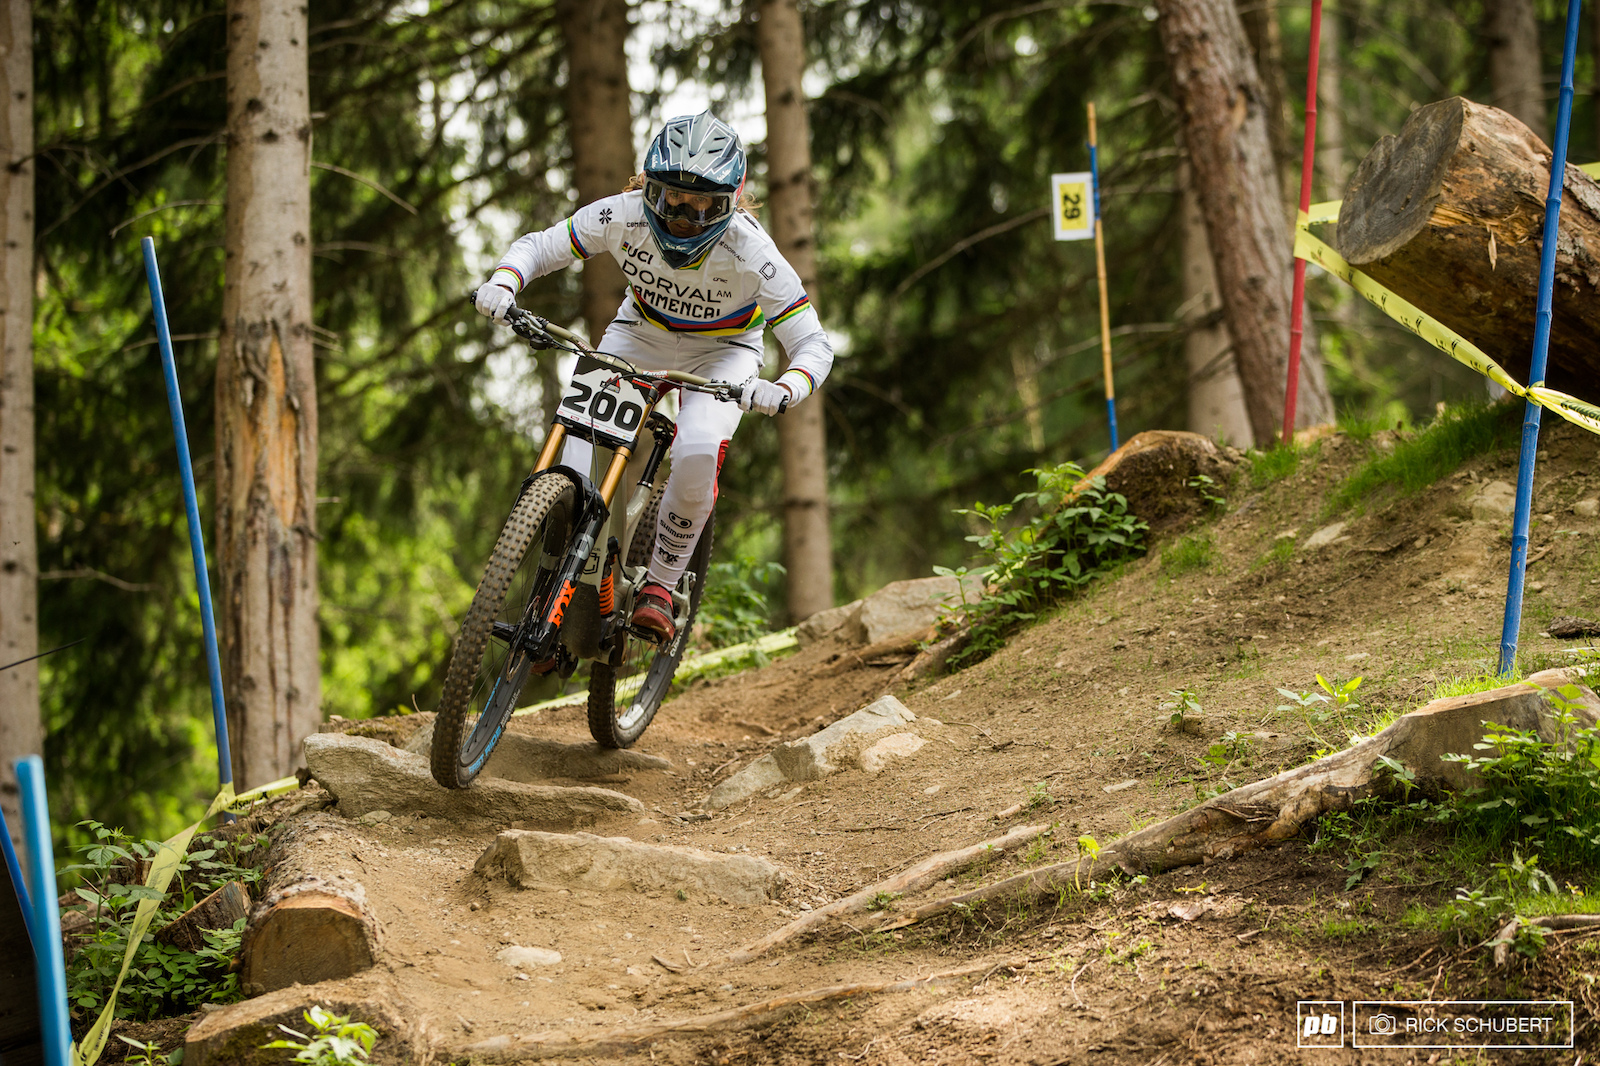 Cam Balanche did her first Crankworx and seemed to enjoy the different disciplines